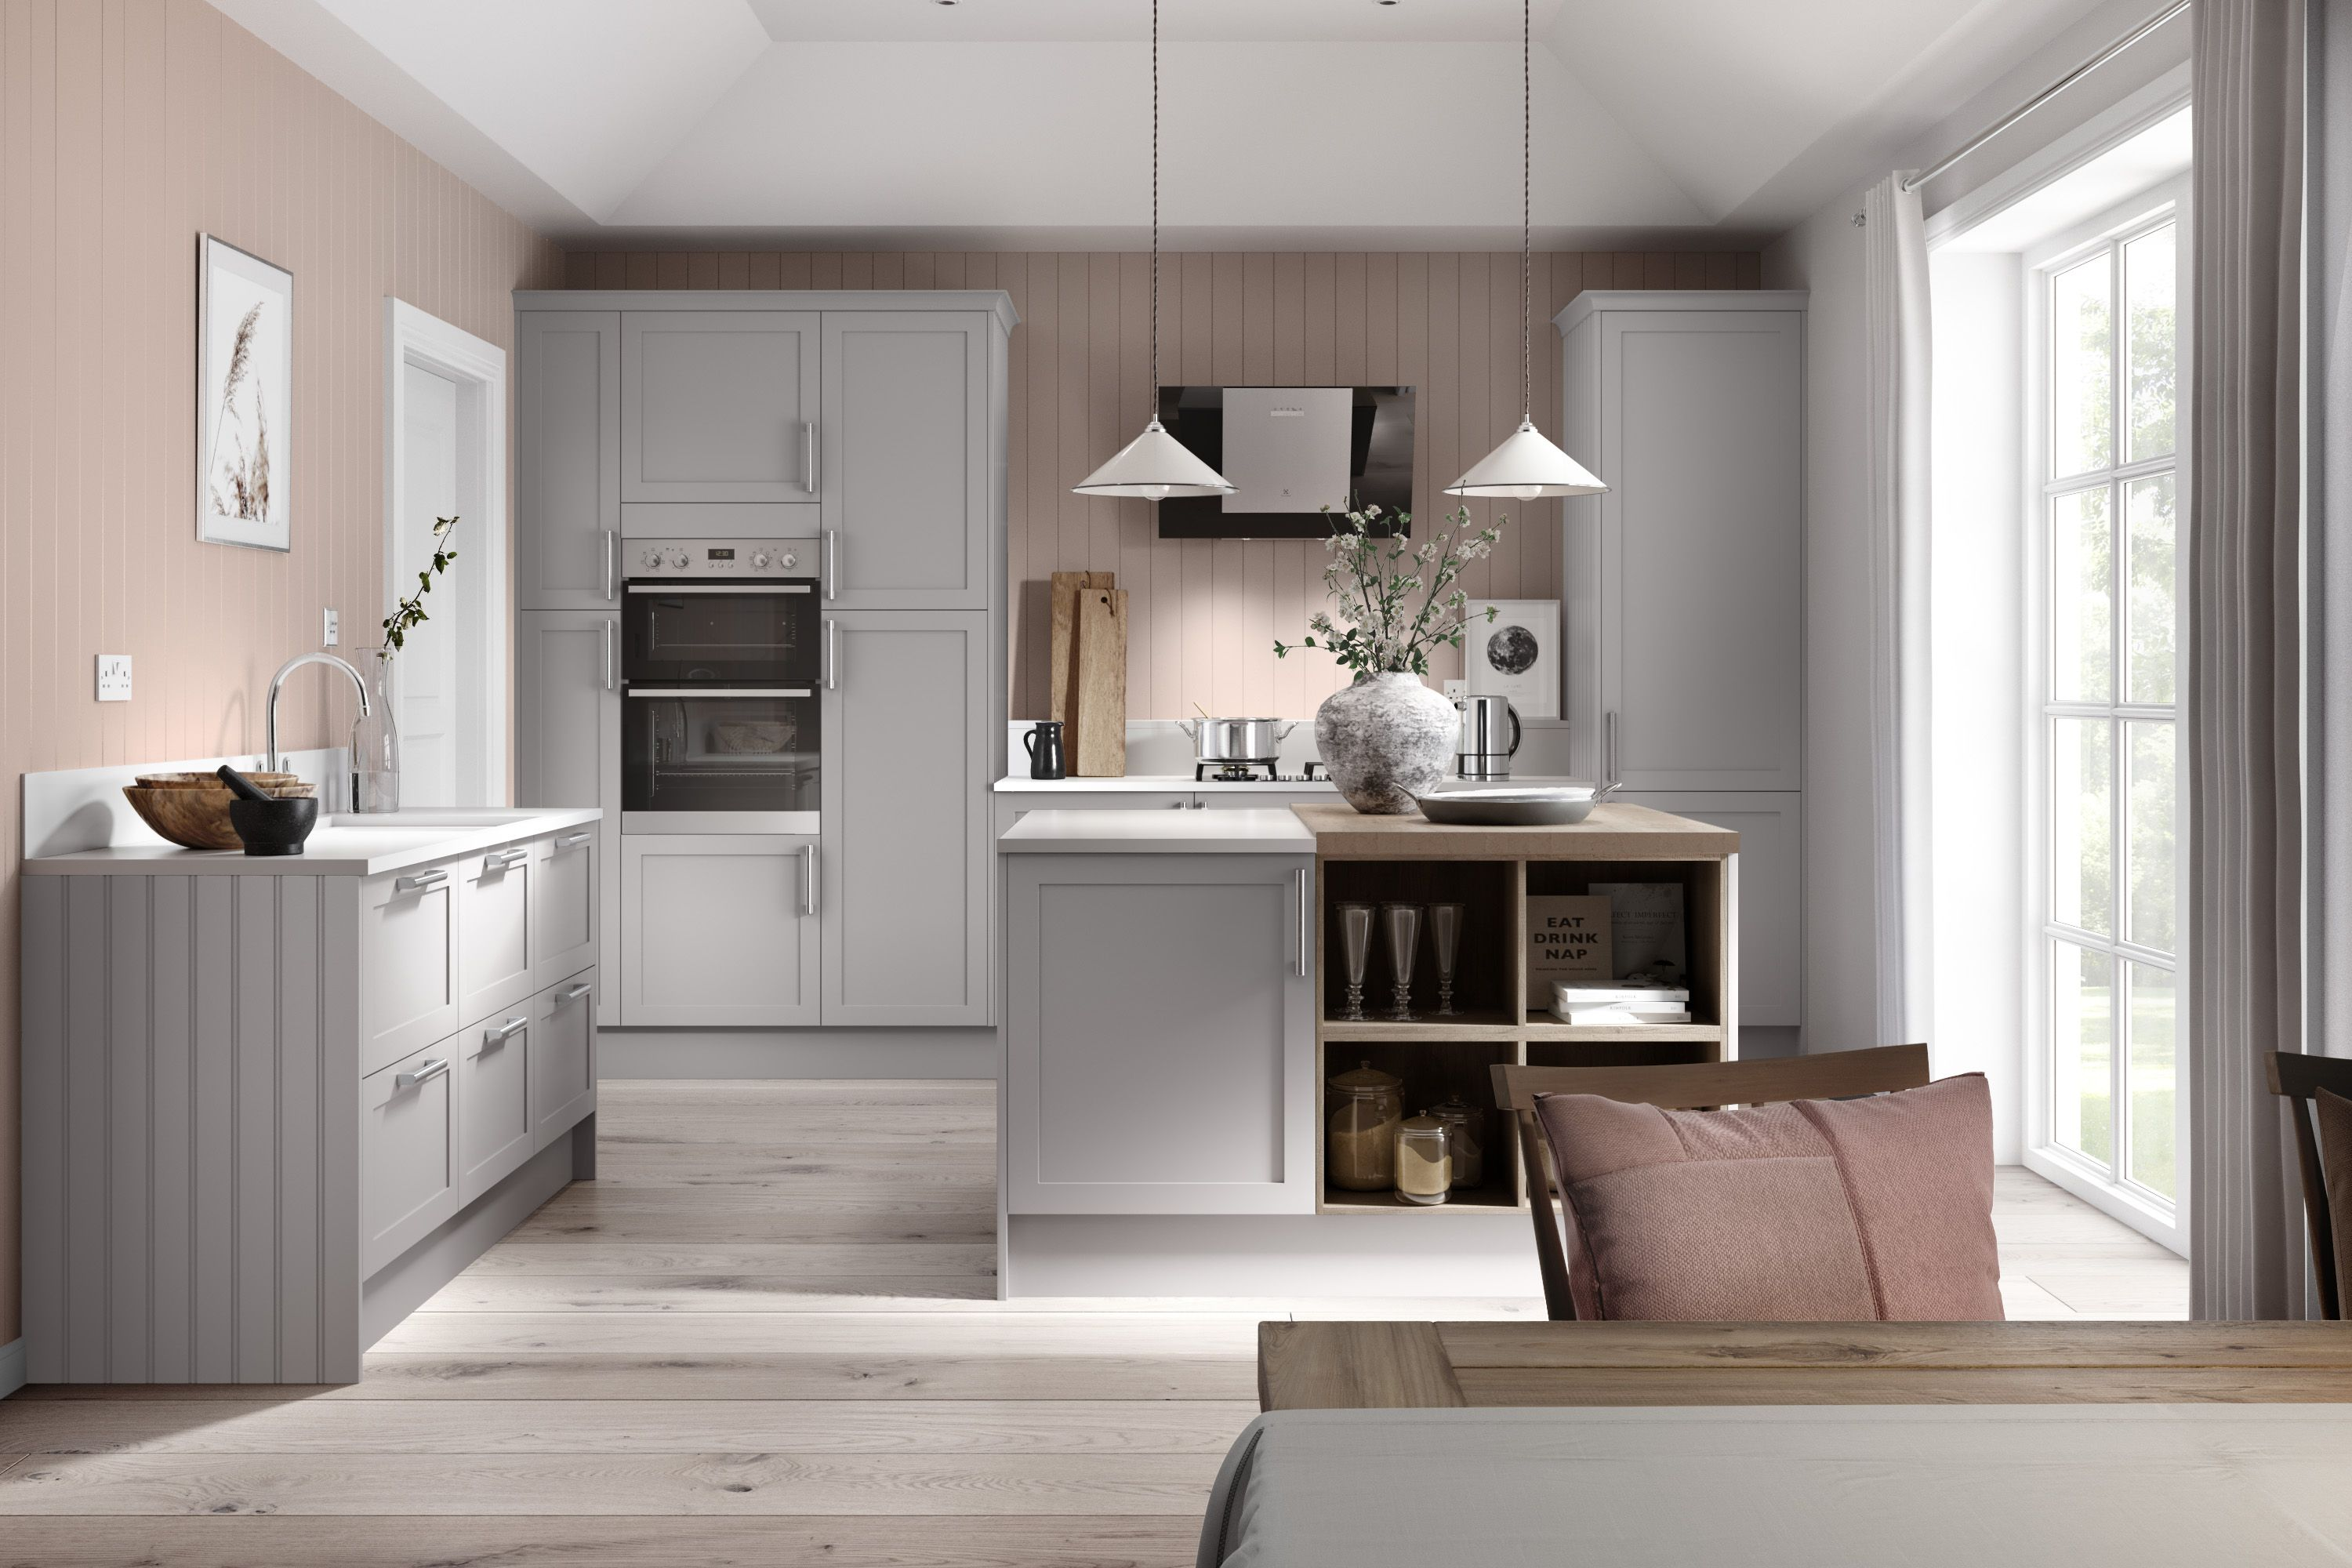 Create a soothing look by pairing light dove grey